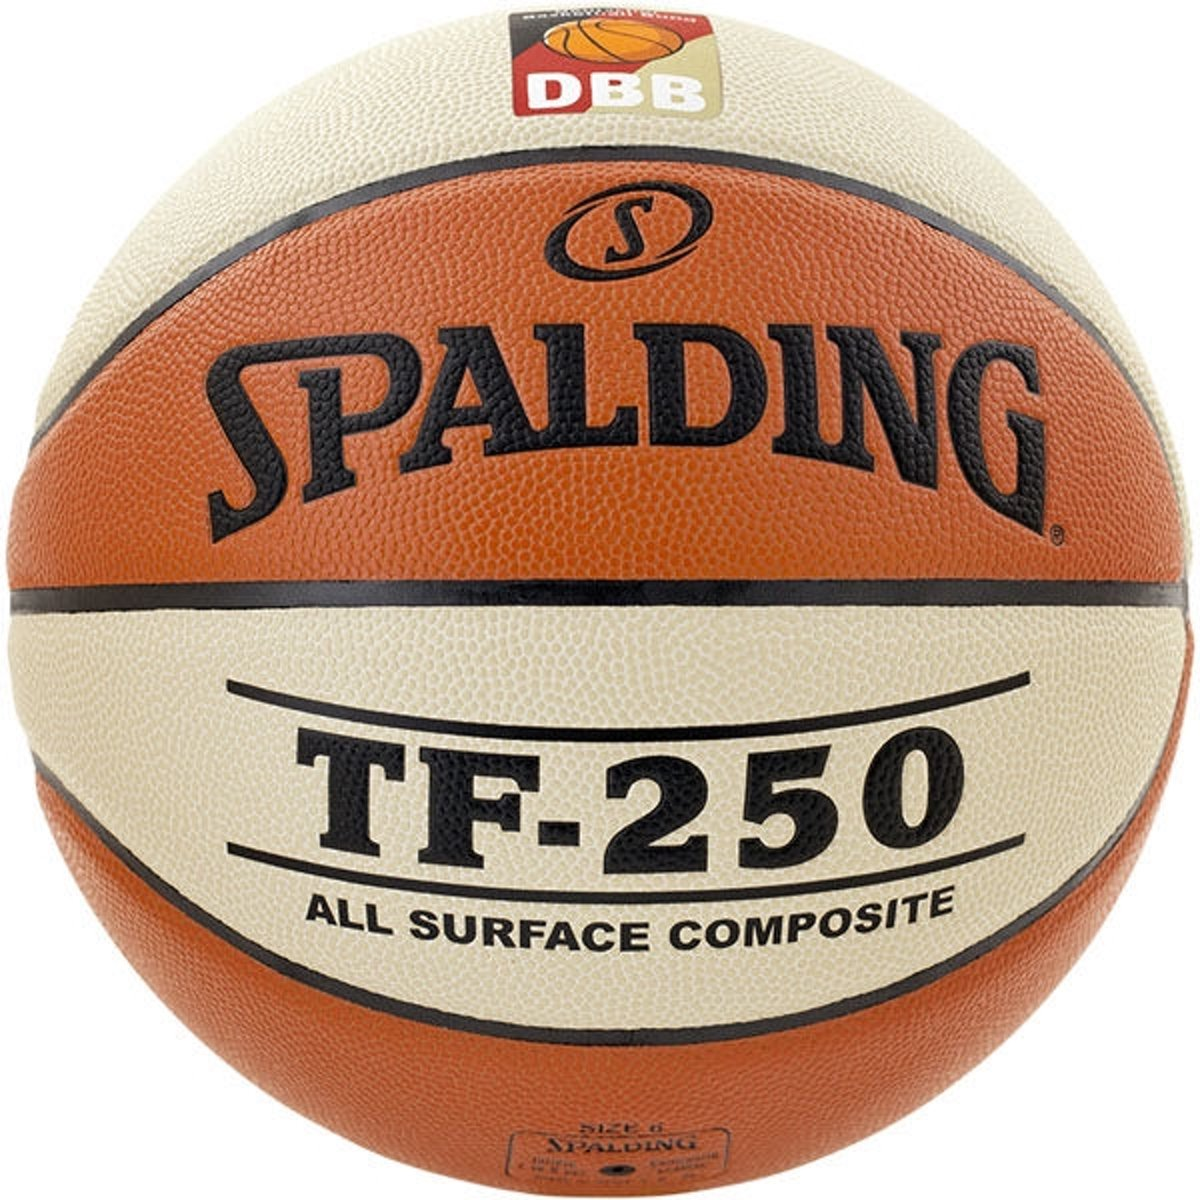 Spalding TF250 DBB IN/OUT Maat 6 kopen